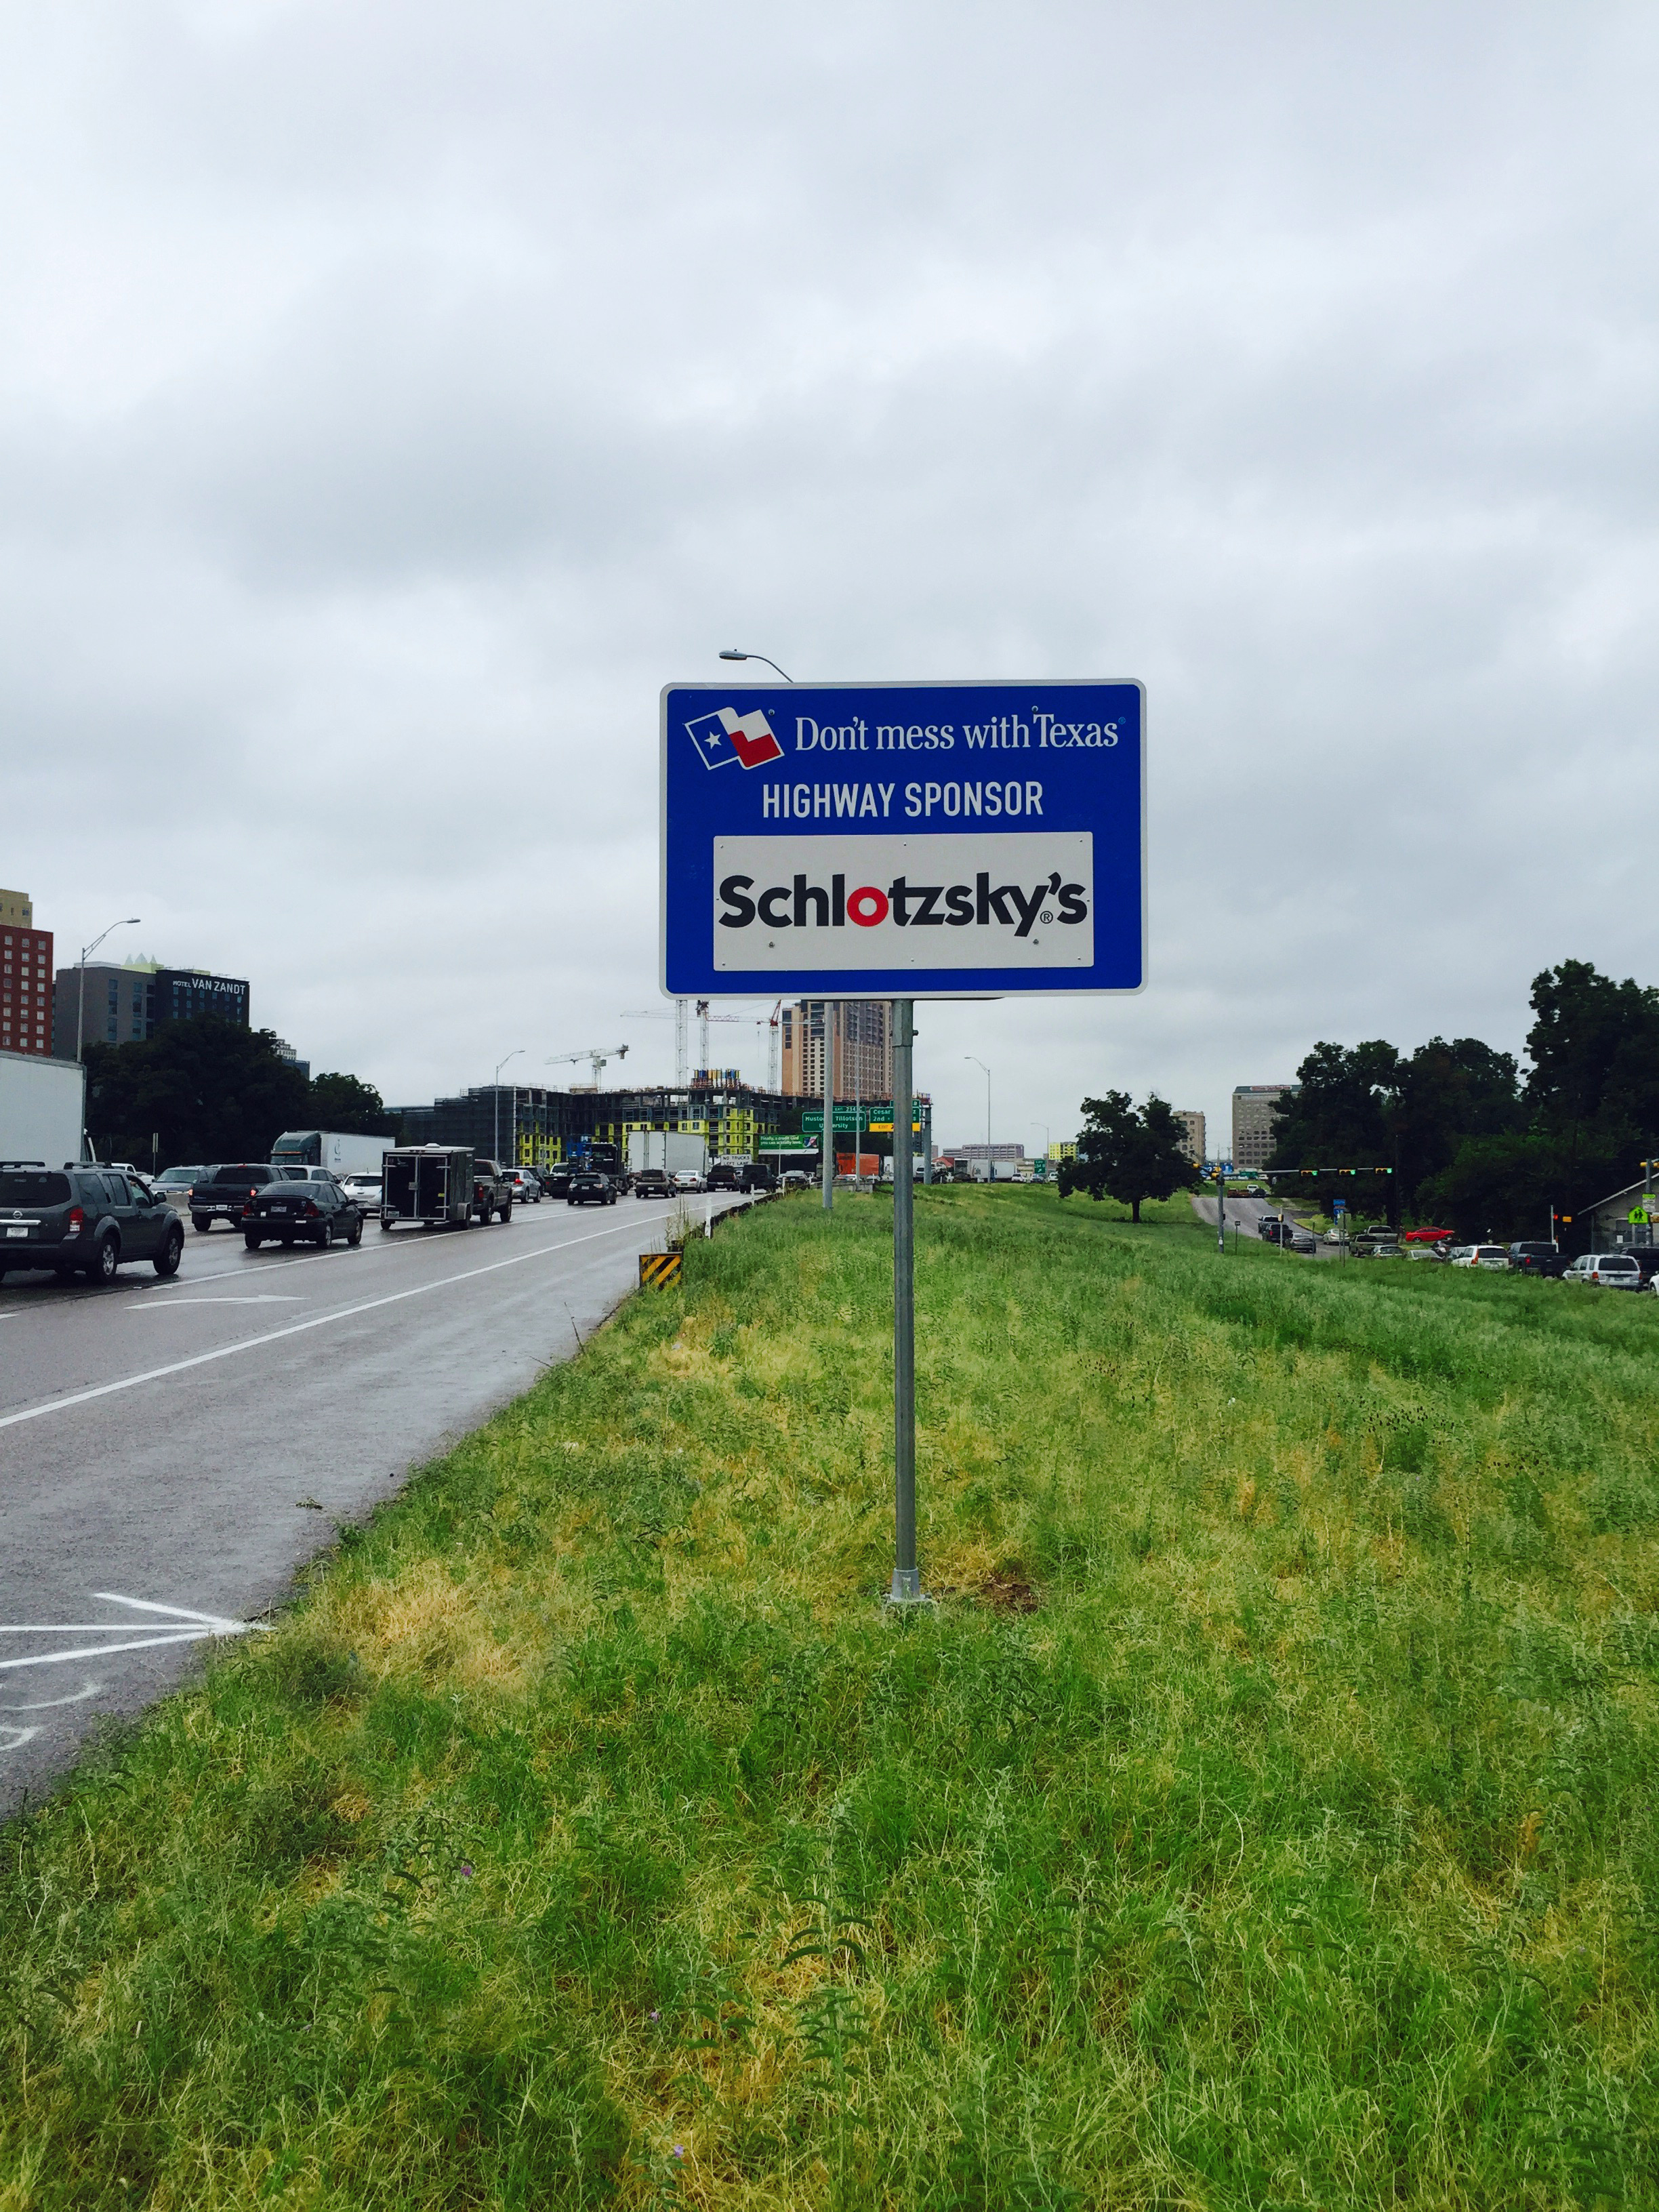 Schlotzsky's Texas Sponsor A Highway Program sign